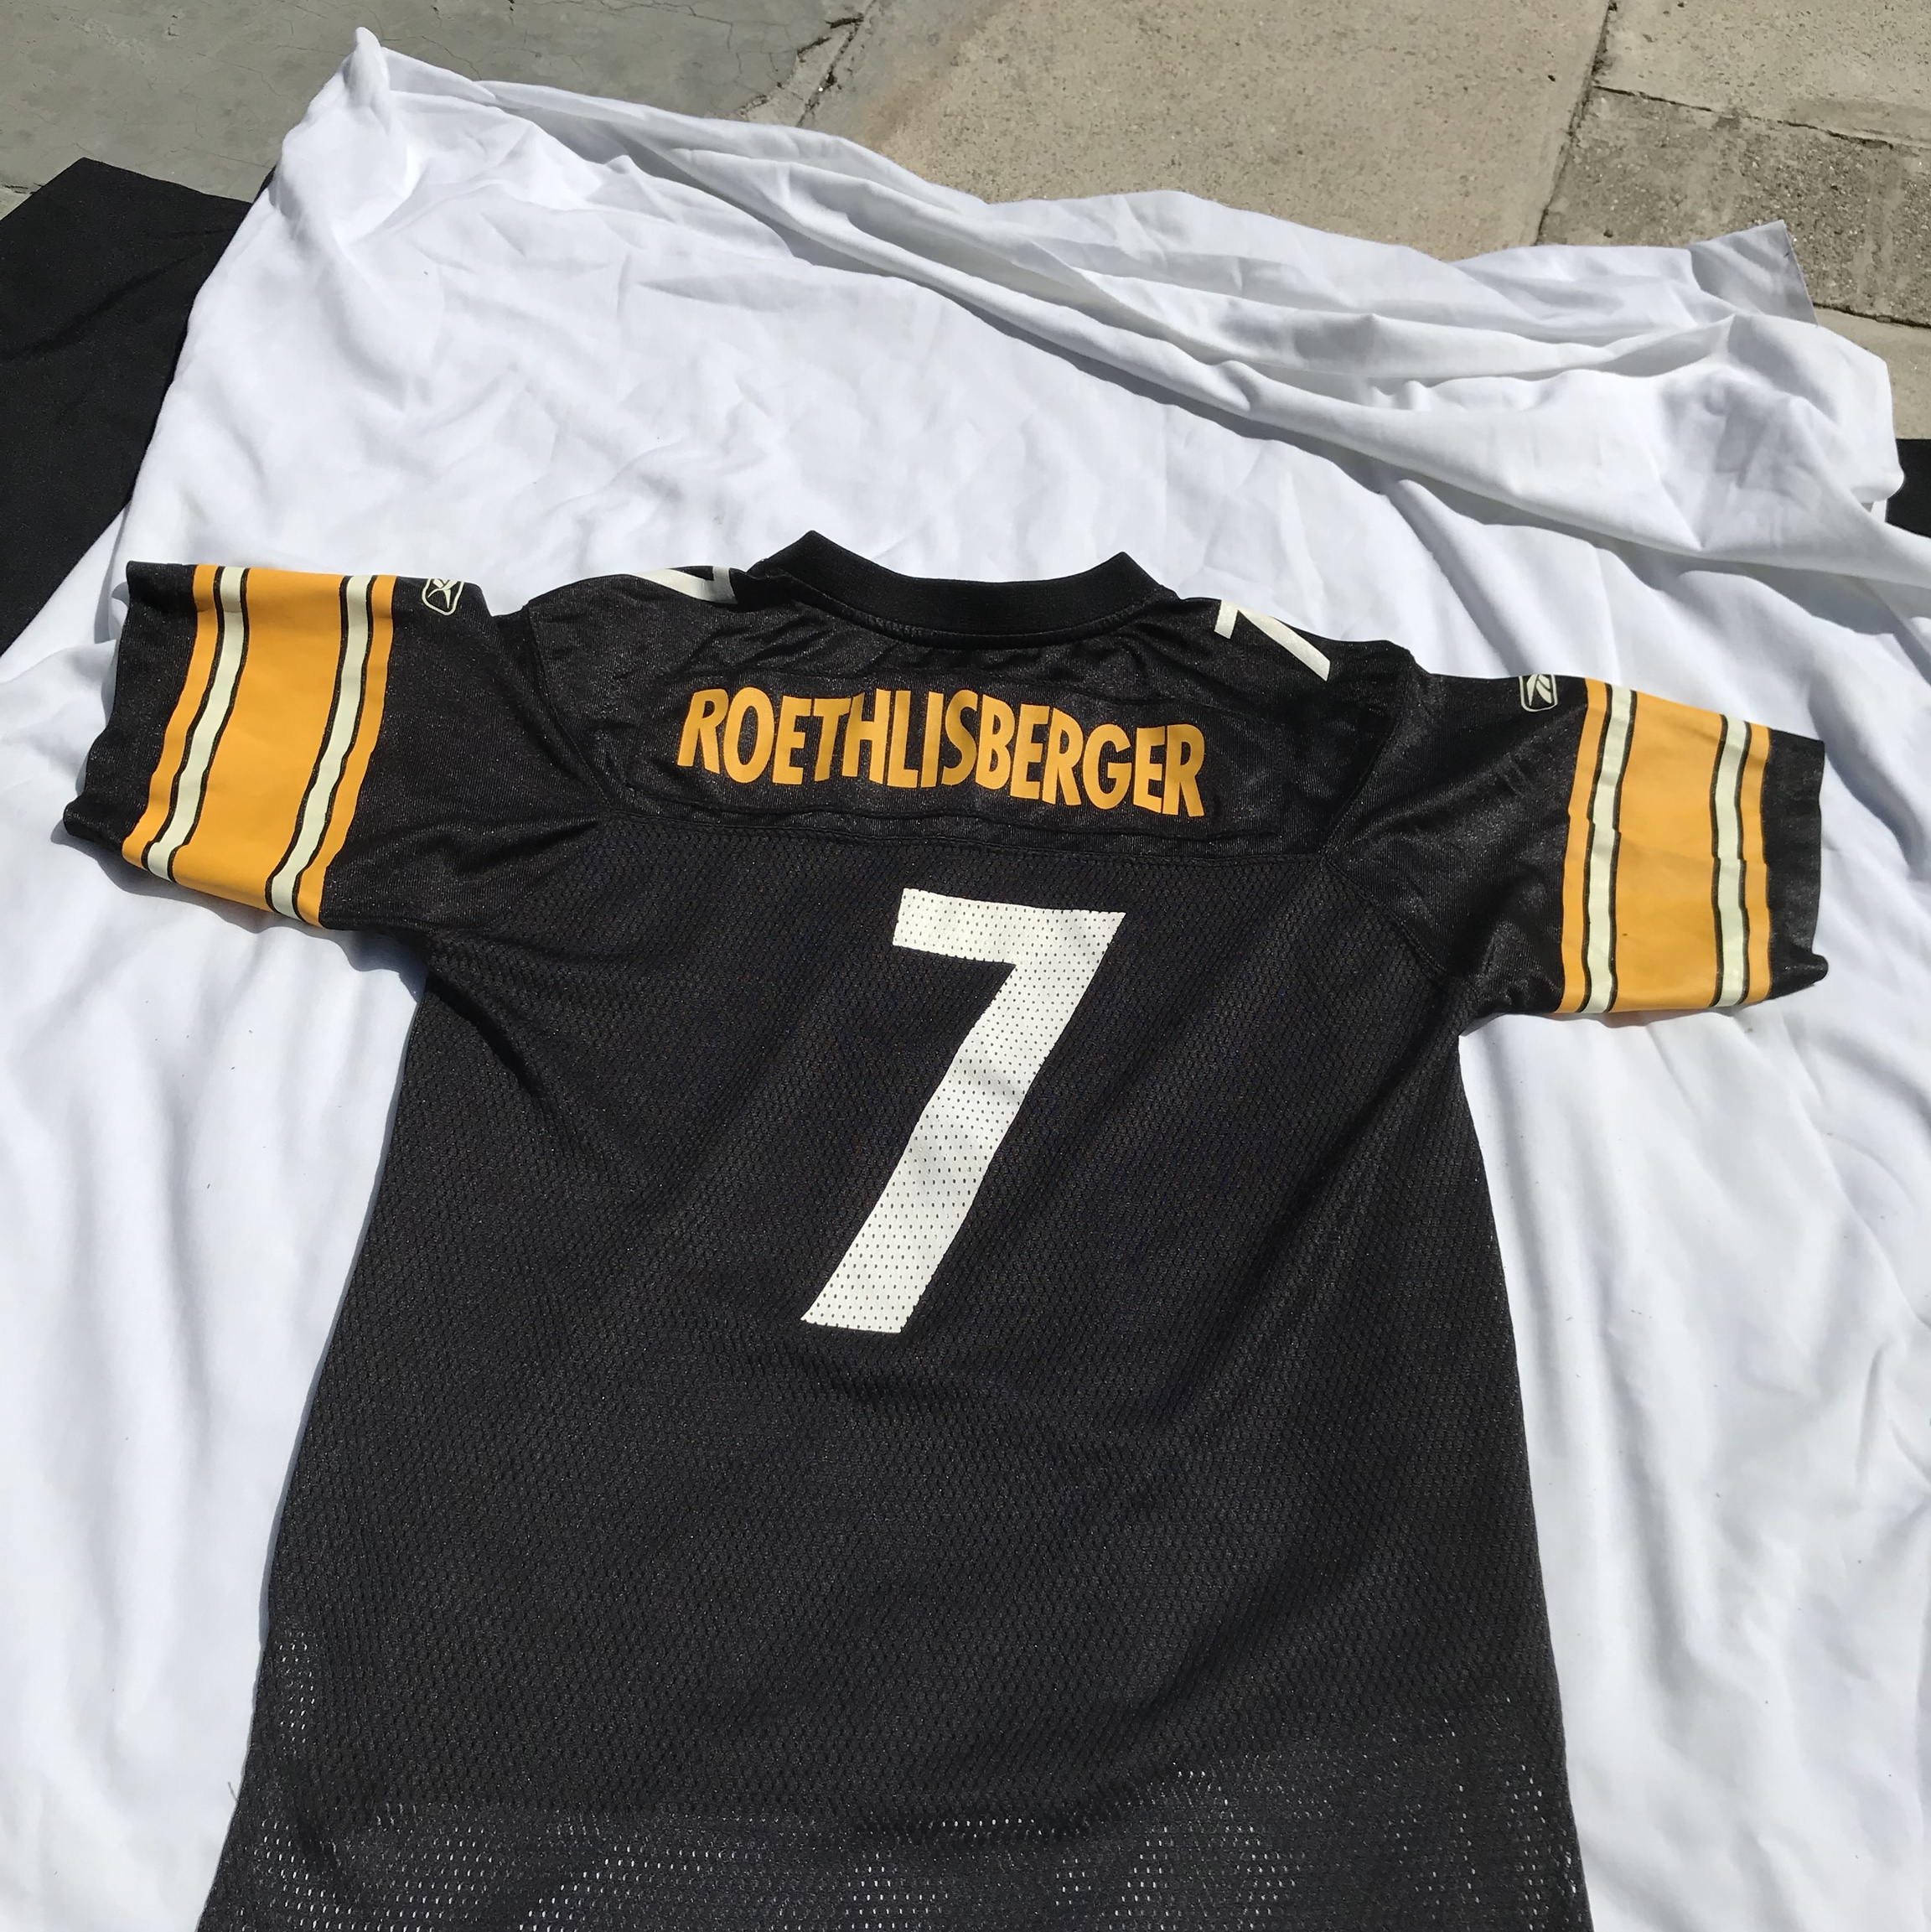 quality design 34f50 4153a Pittsburgh Steelers Ben Roethlisberger jersey large... - Depop